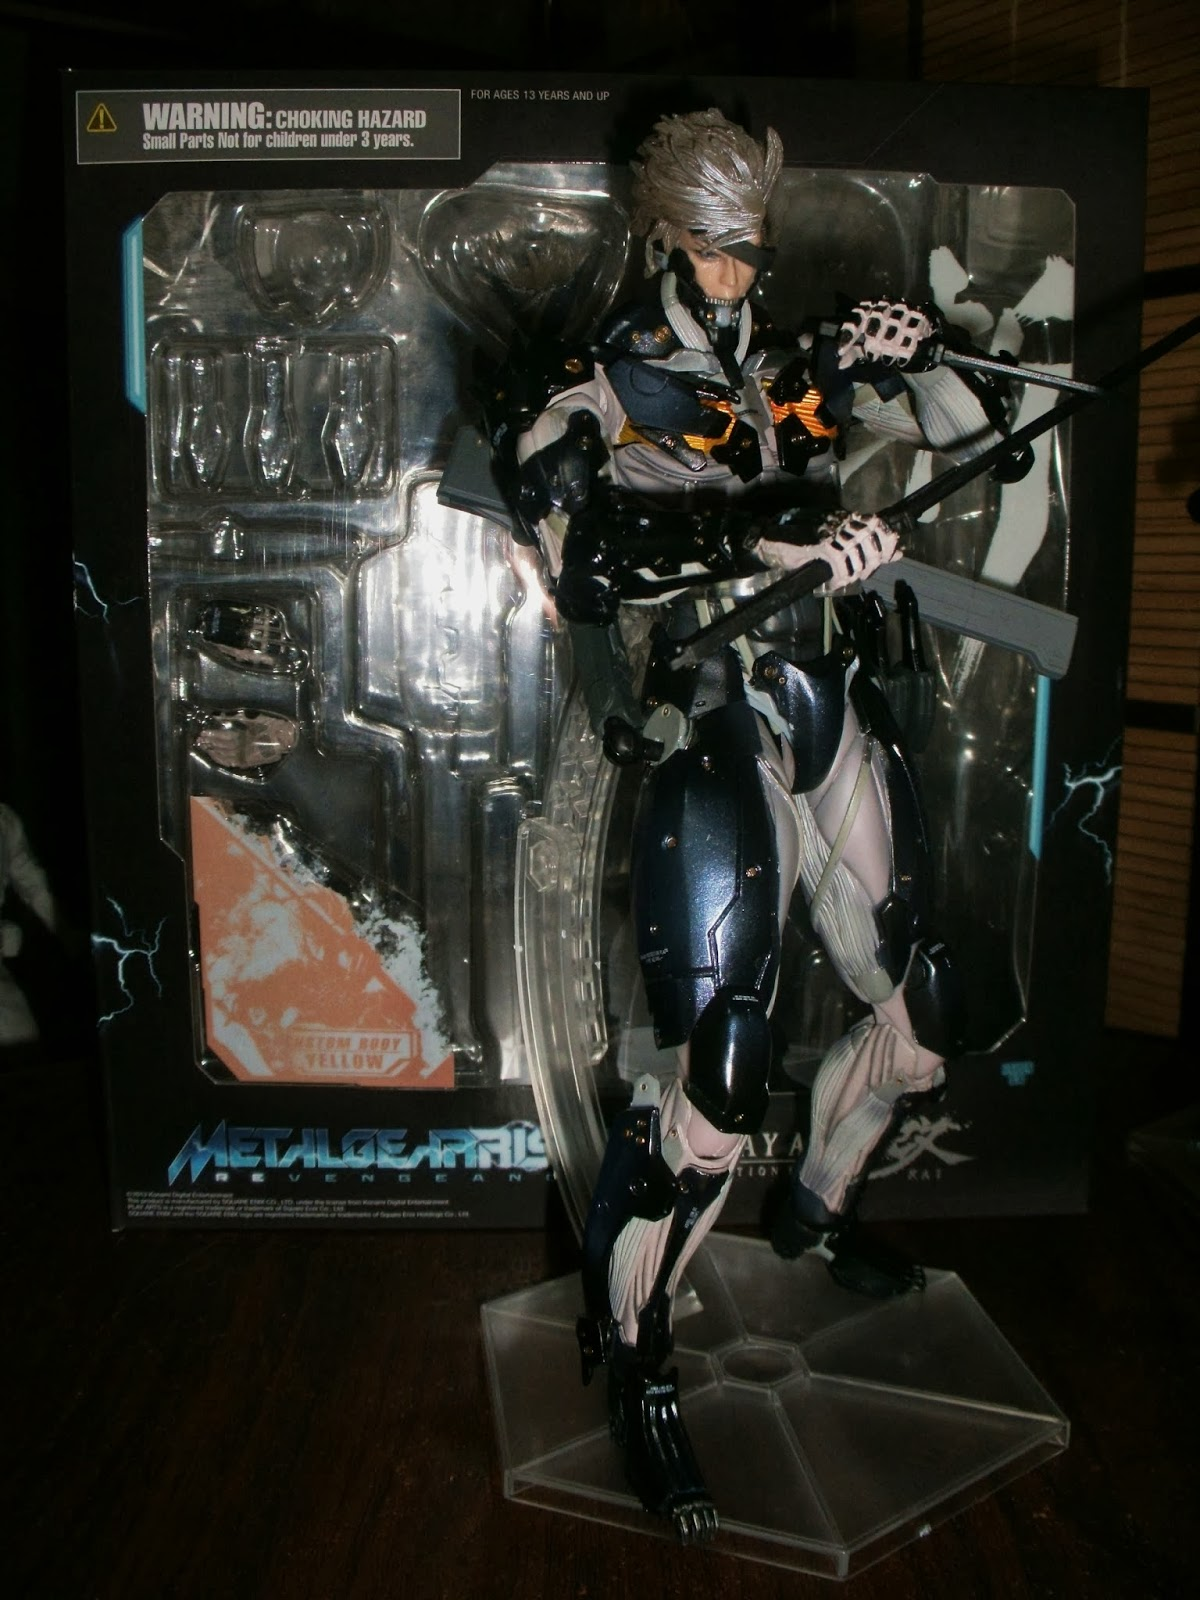 angels and summer play arts kai raiden mgrr comparative review